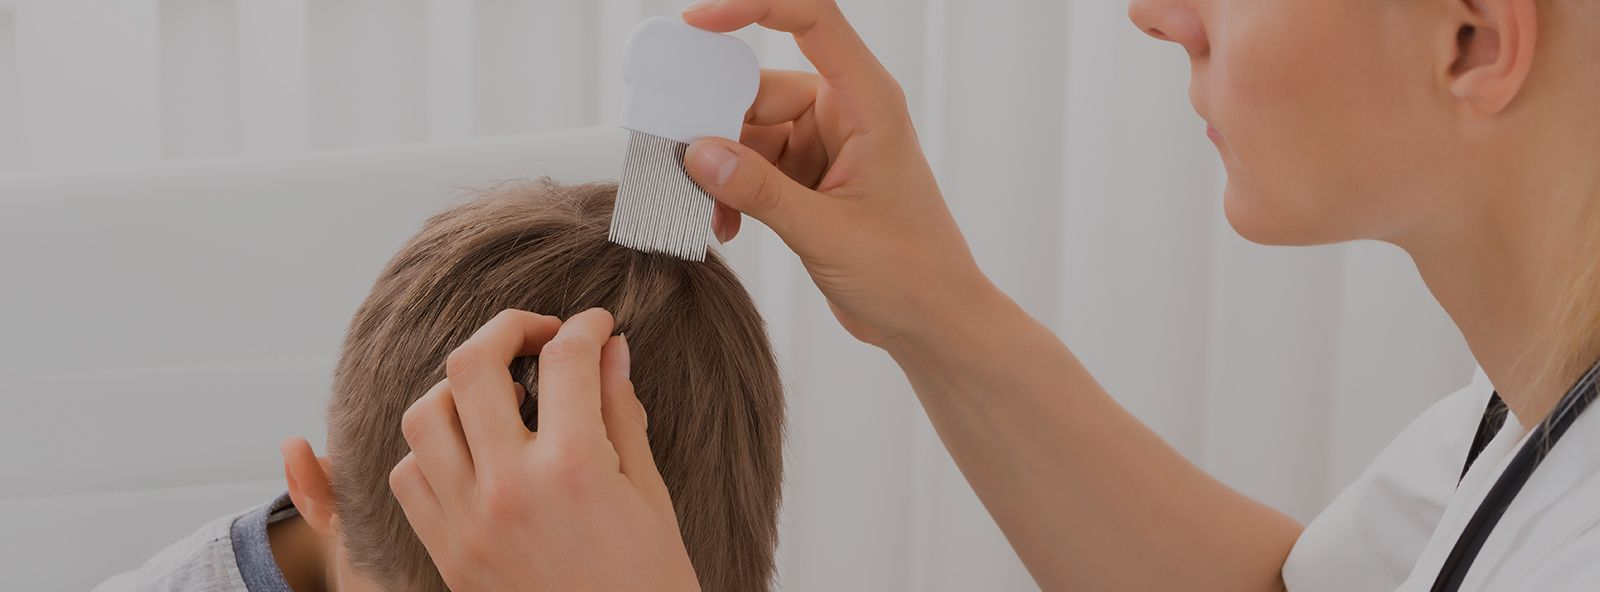 Lice Removal with All Organic Lice Removal Lice LiceTreatment